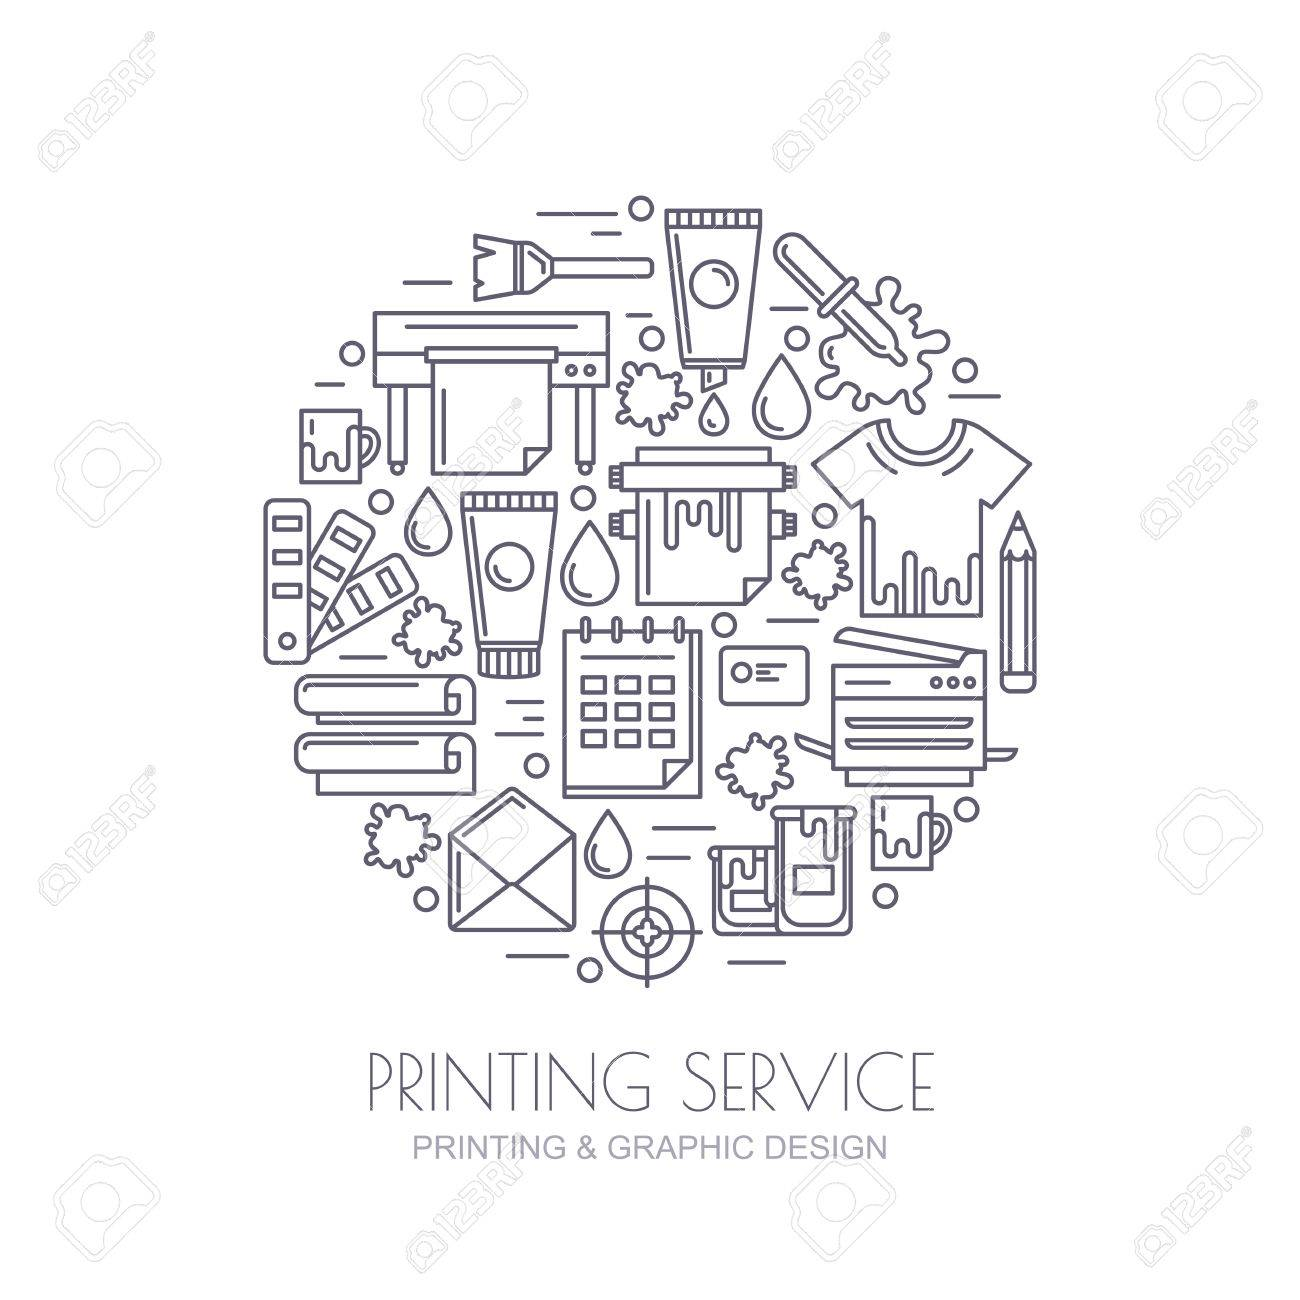 Vector outline icons set, logo and design elements. Concept for copy center, printing service, publishing design. Printer, paints, paper, corporate identity line illustration. Abstract background. - 51789199